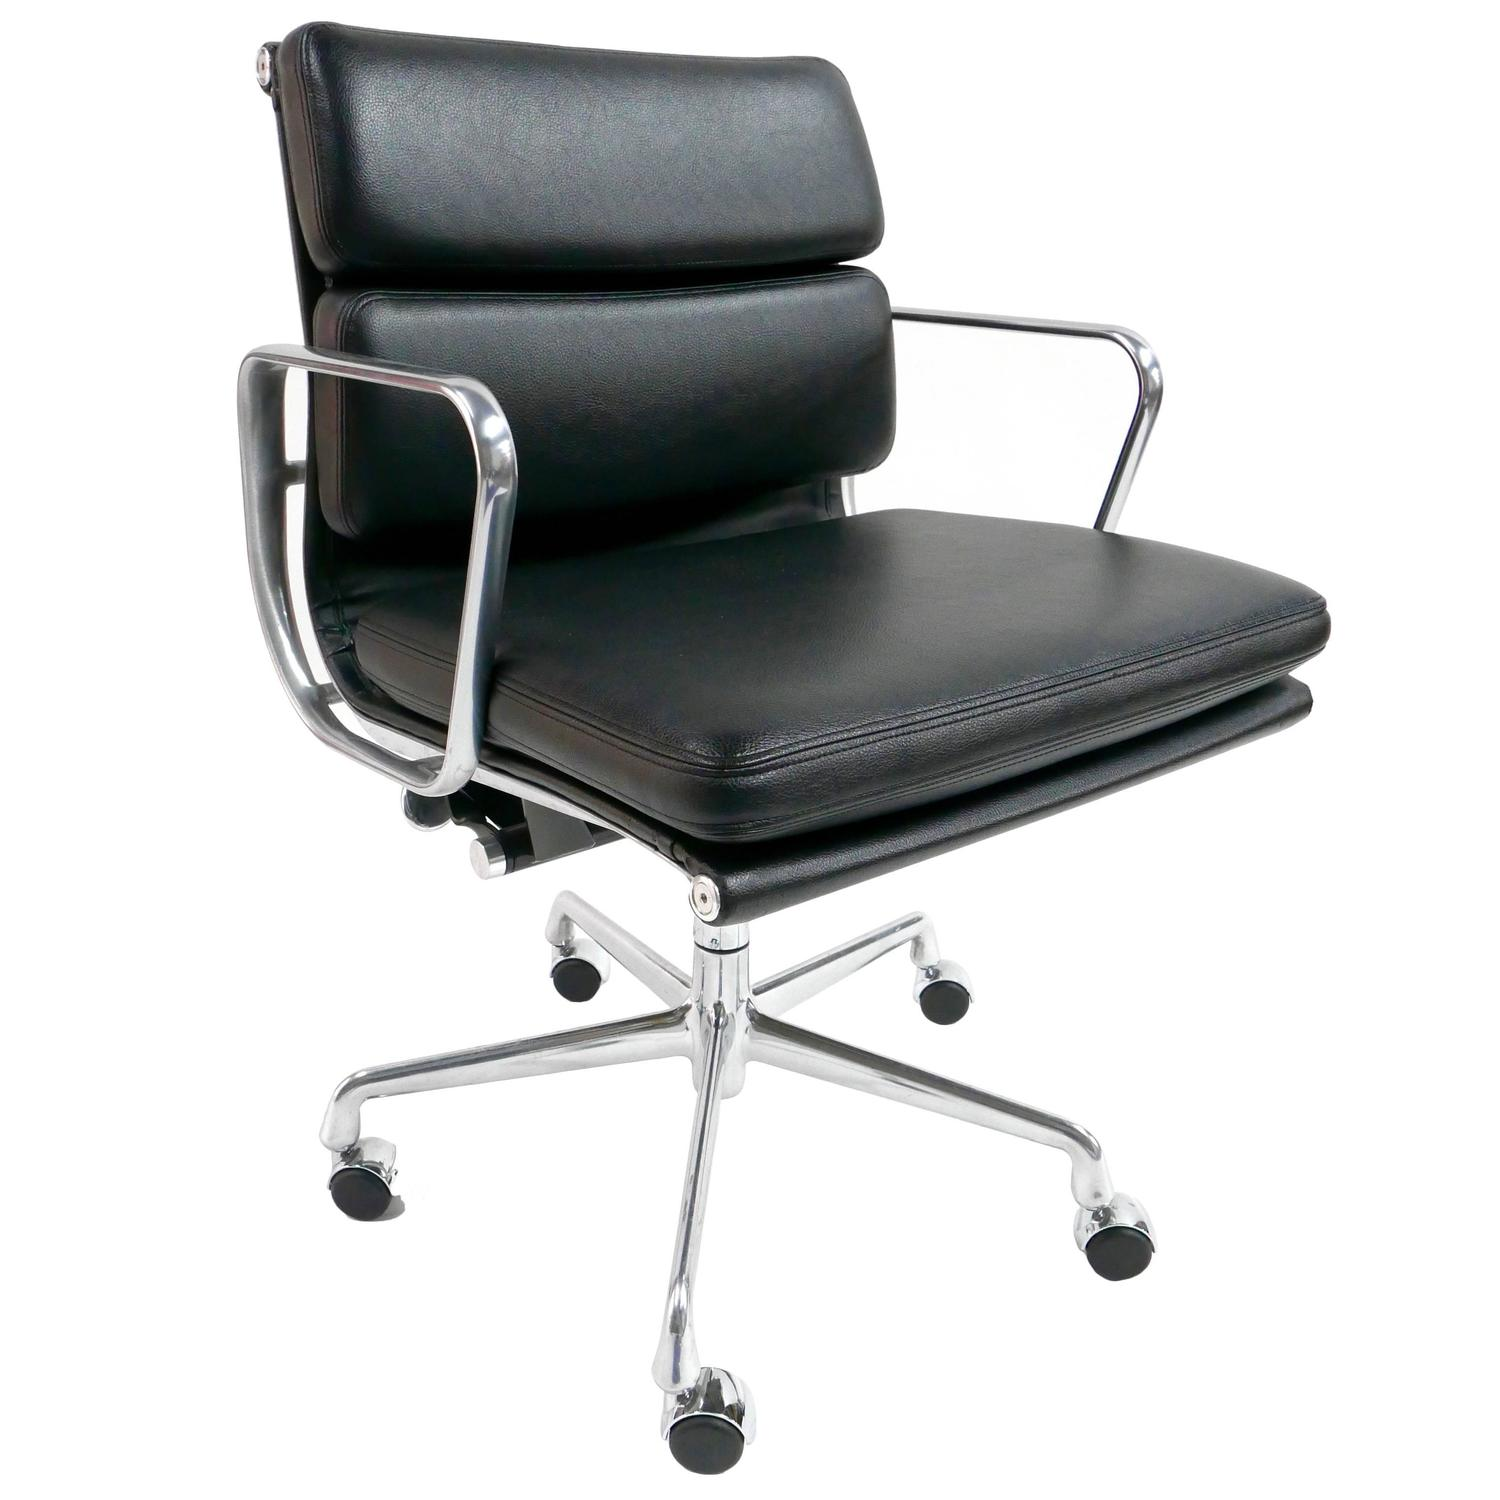 charming charles eames office chairs charles and ray eames soft pad chair for herman miller at charles ray eames furniture